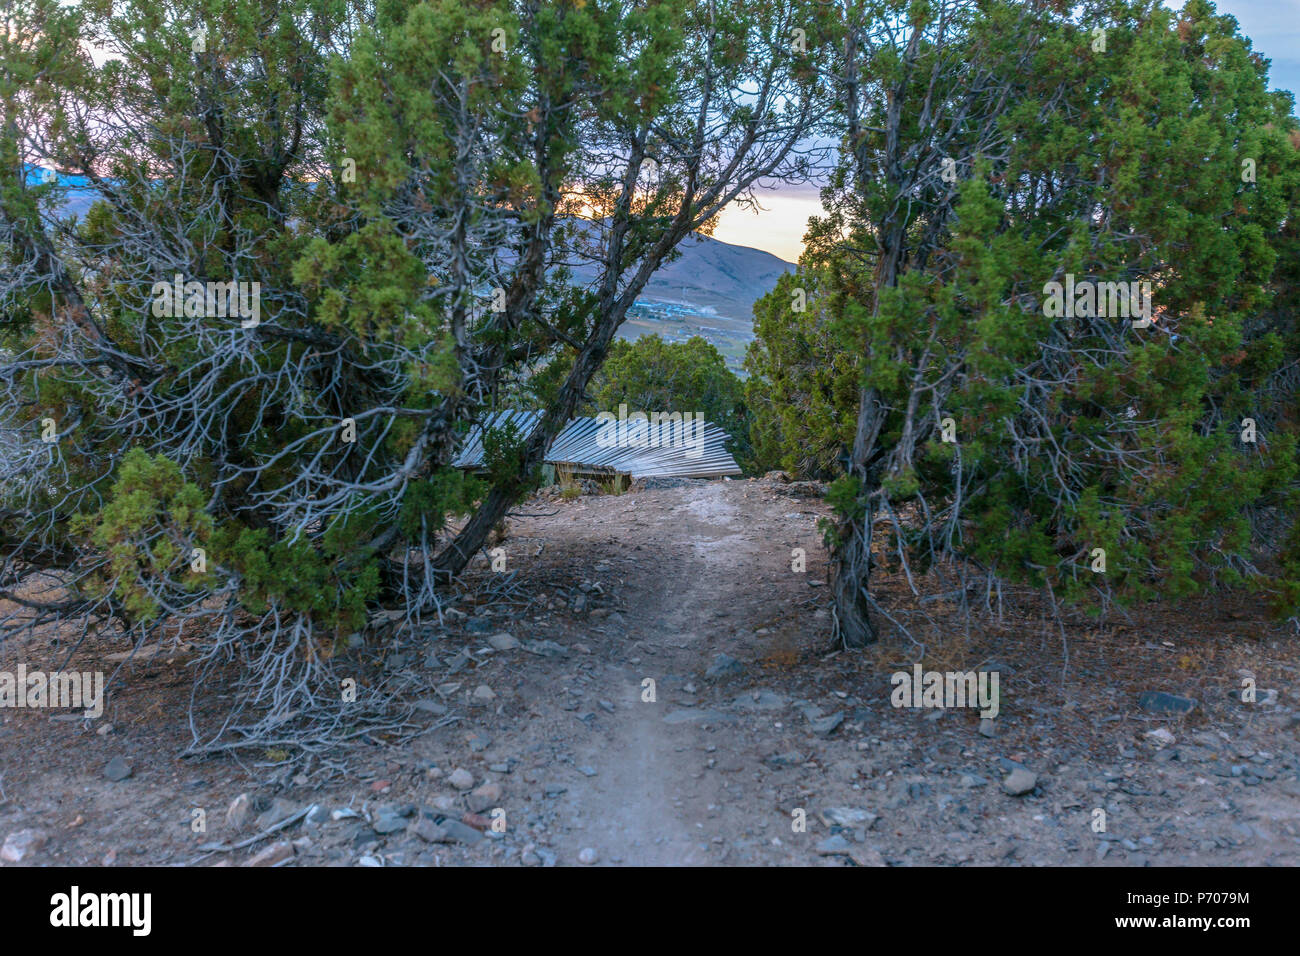 Trail leading to trials feature on hike - Stock Image